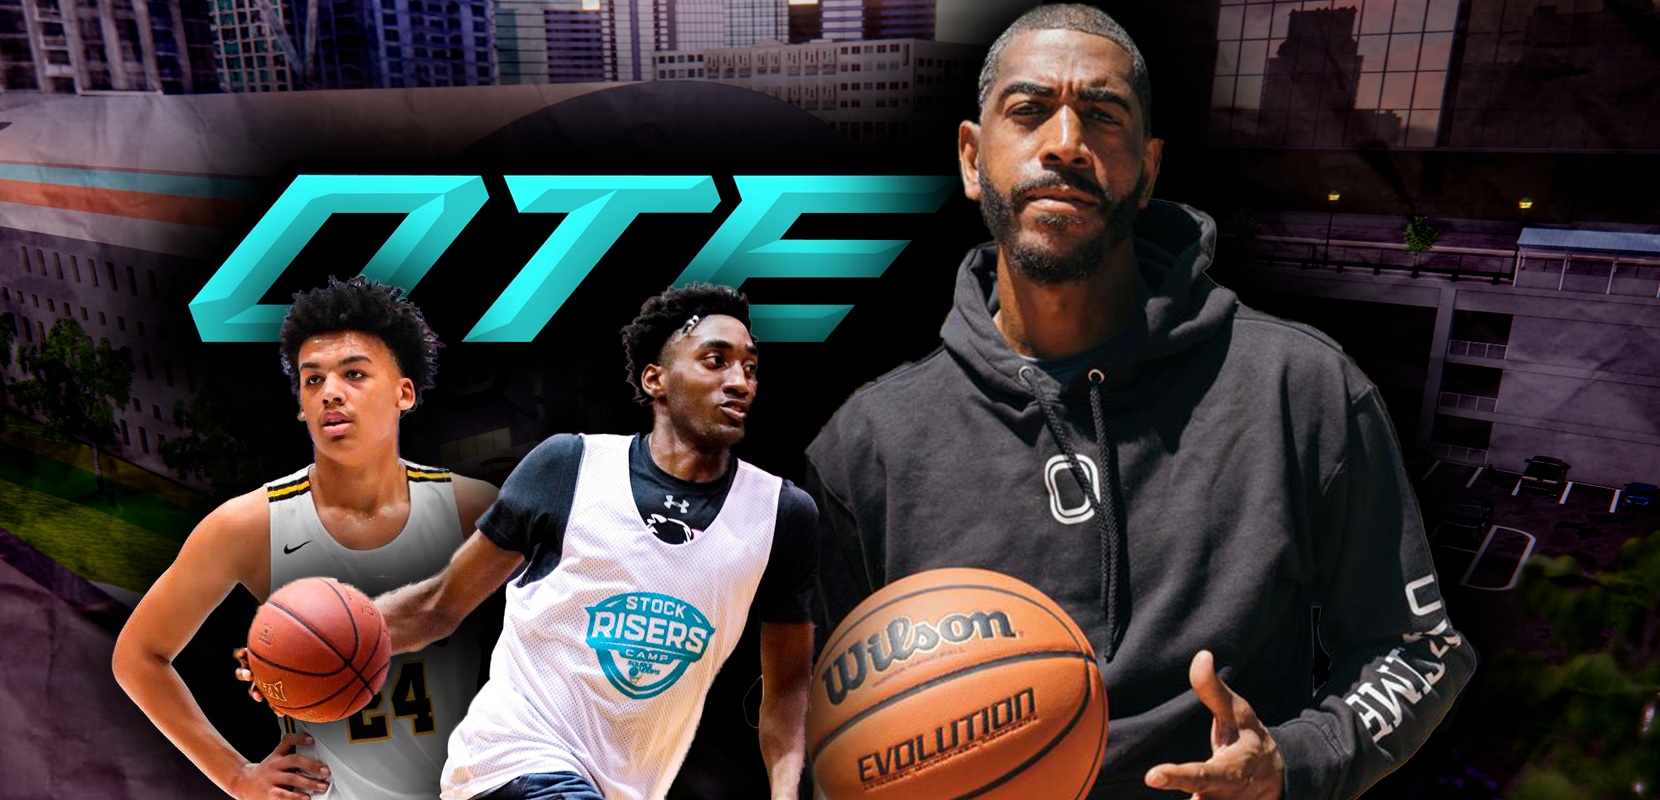 Overtime Elite Gives Top Basketball Recruits a Different Path